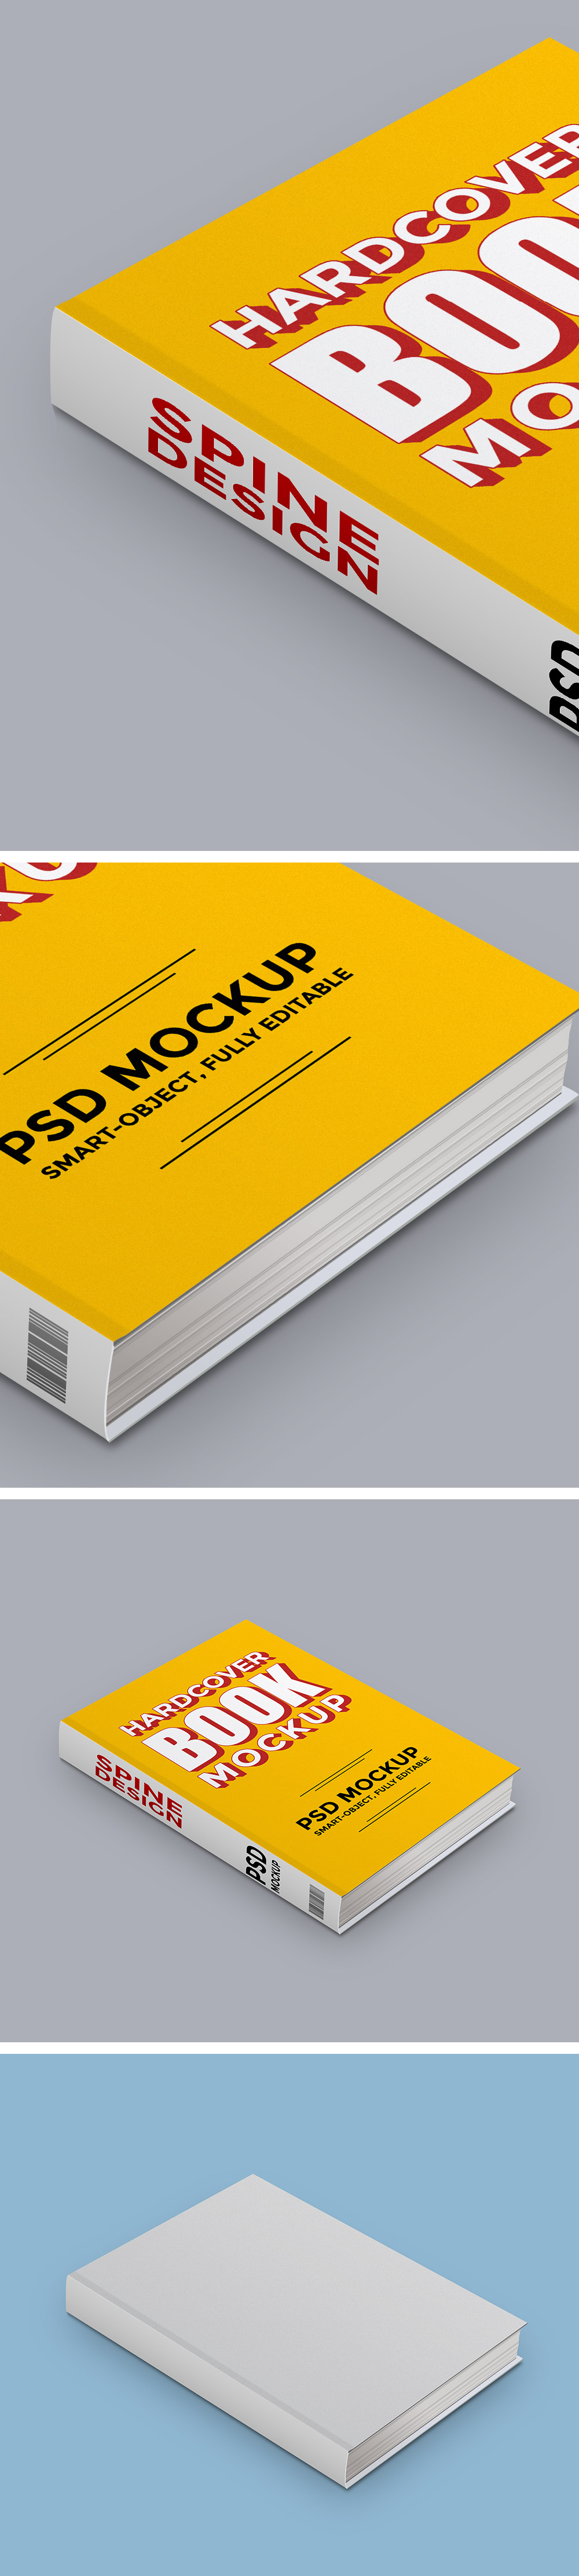 Old Book Cover Mockup : Hardcover book psd mockup graphicsfuel